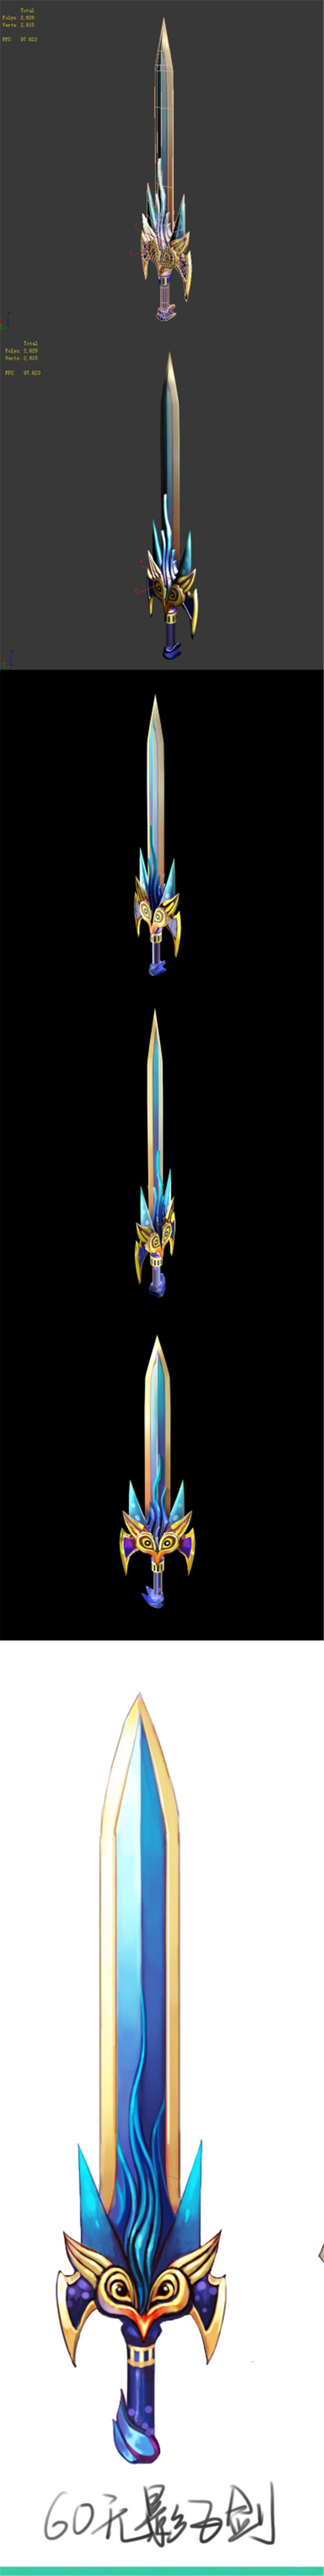 Game characters weapons-60 shadowless fly sword - 3DOcean Item for Sale